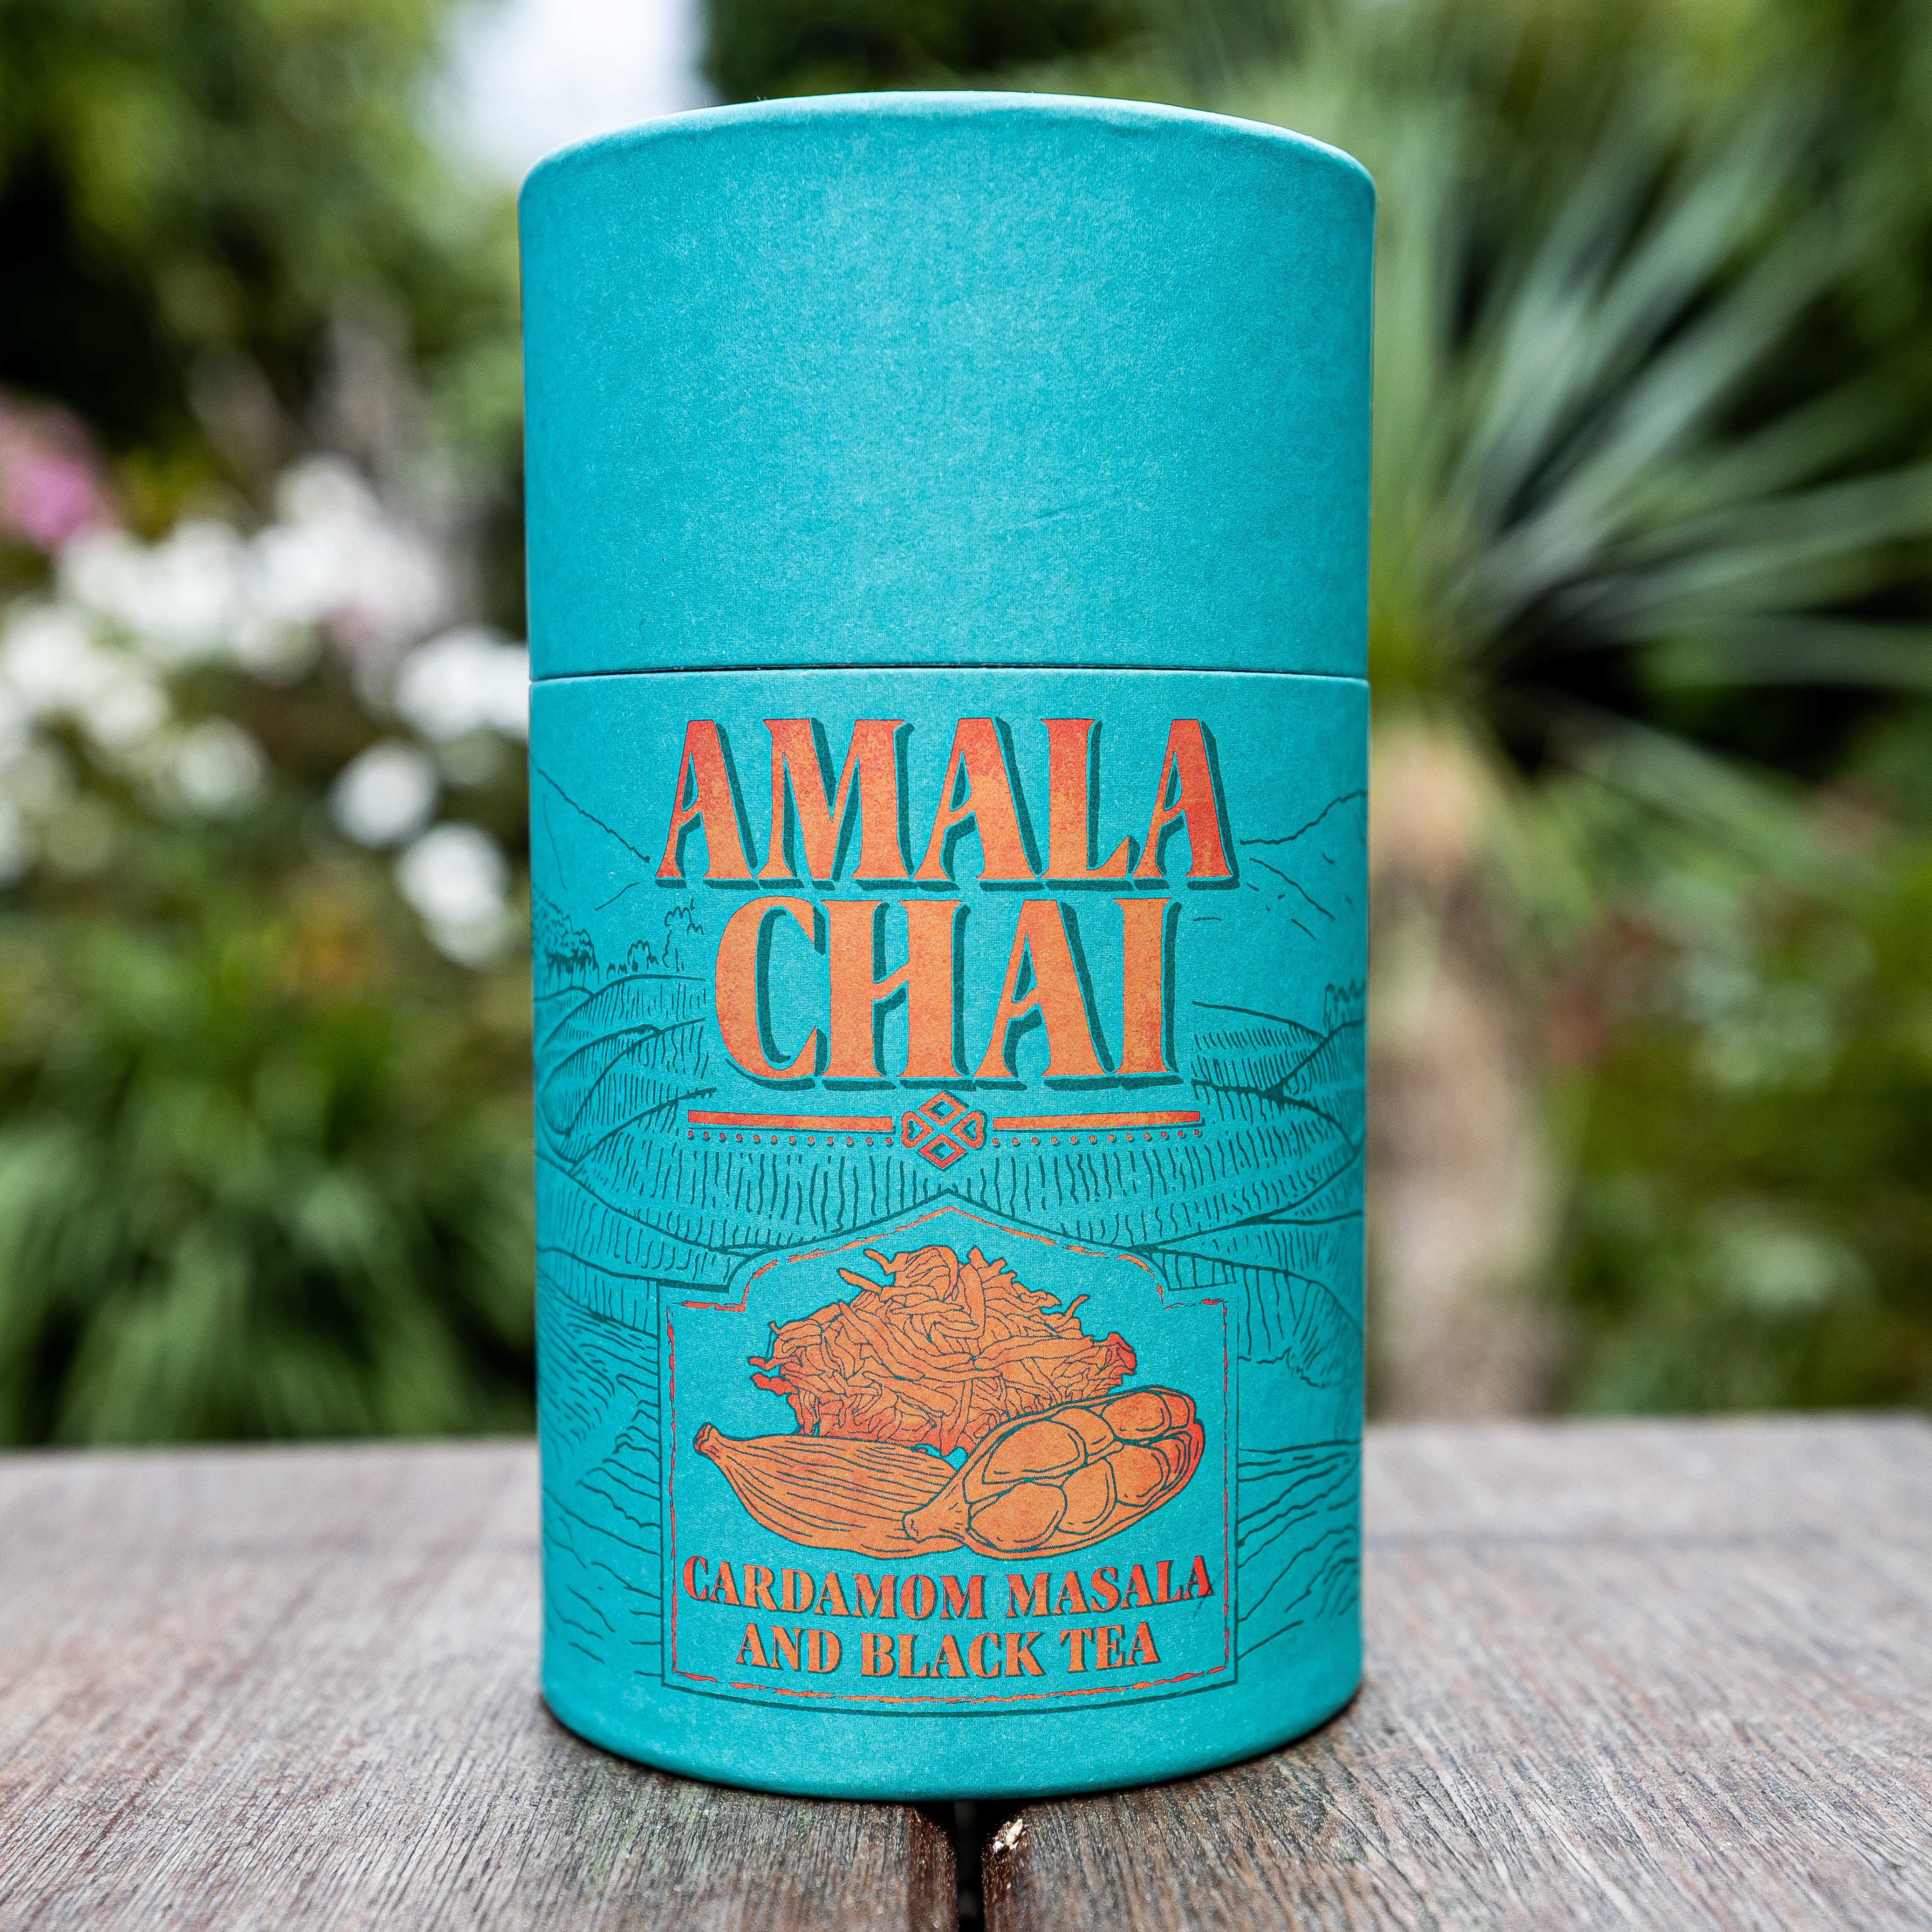 What Do Amala Chai And Polyphenols Have In Common?